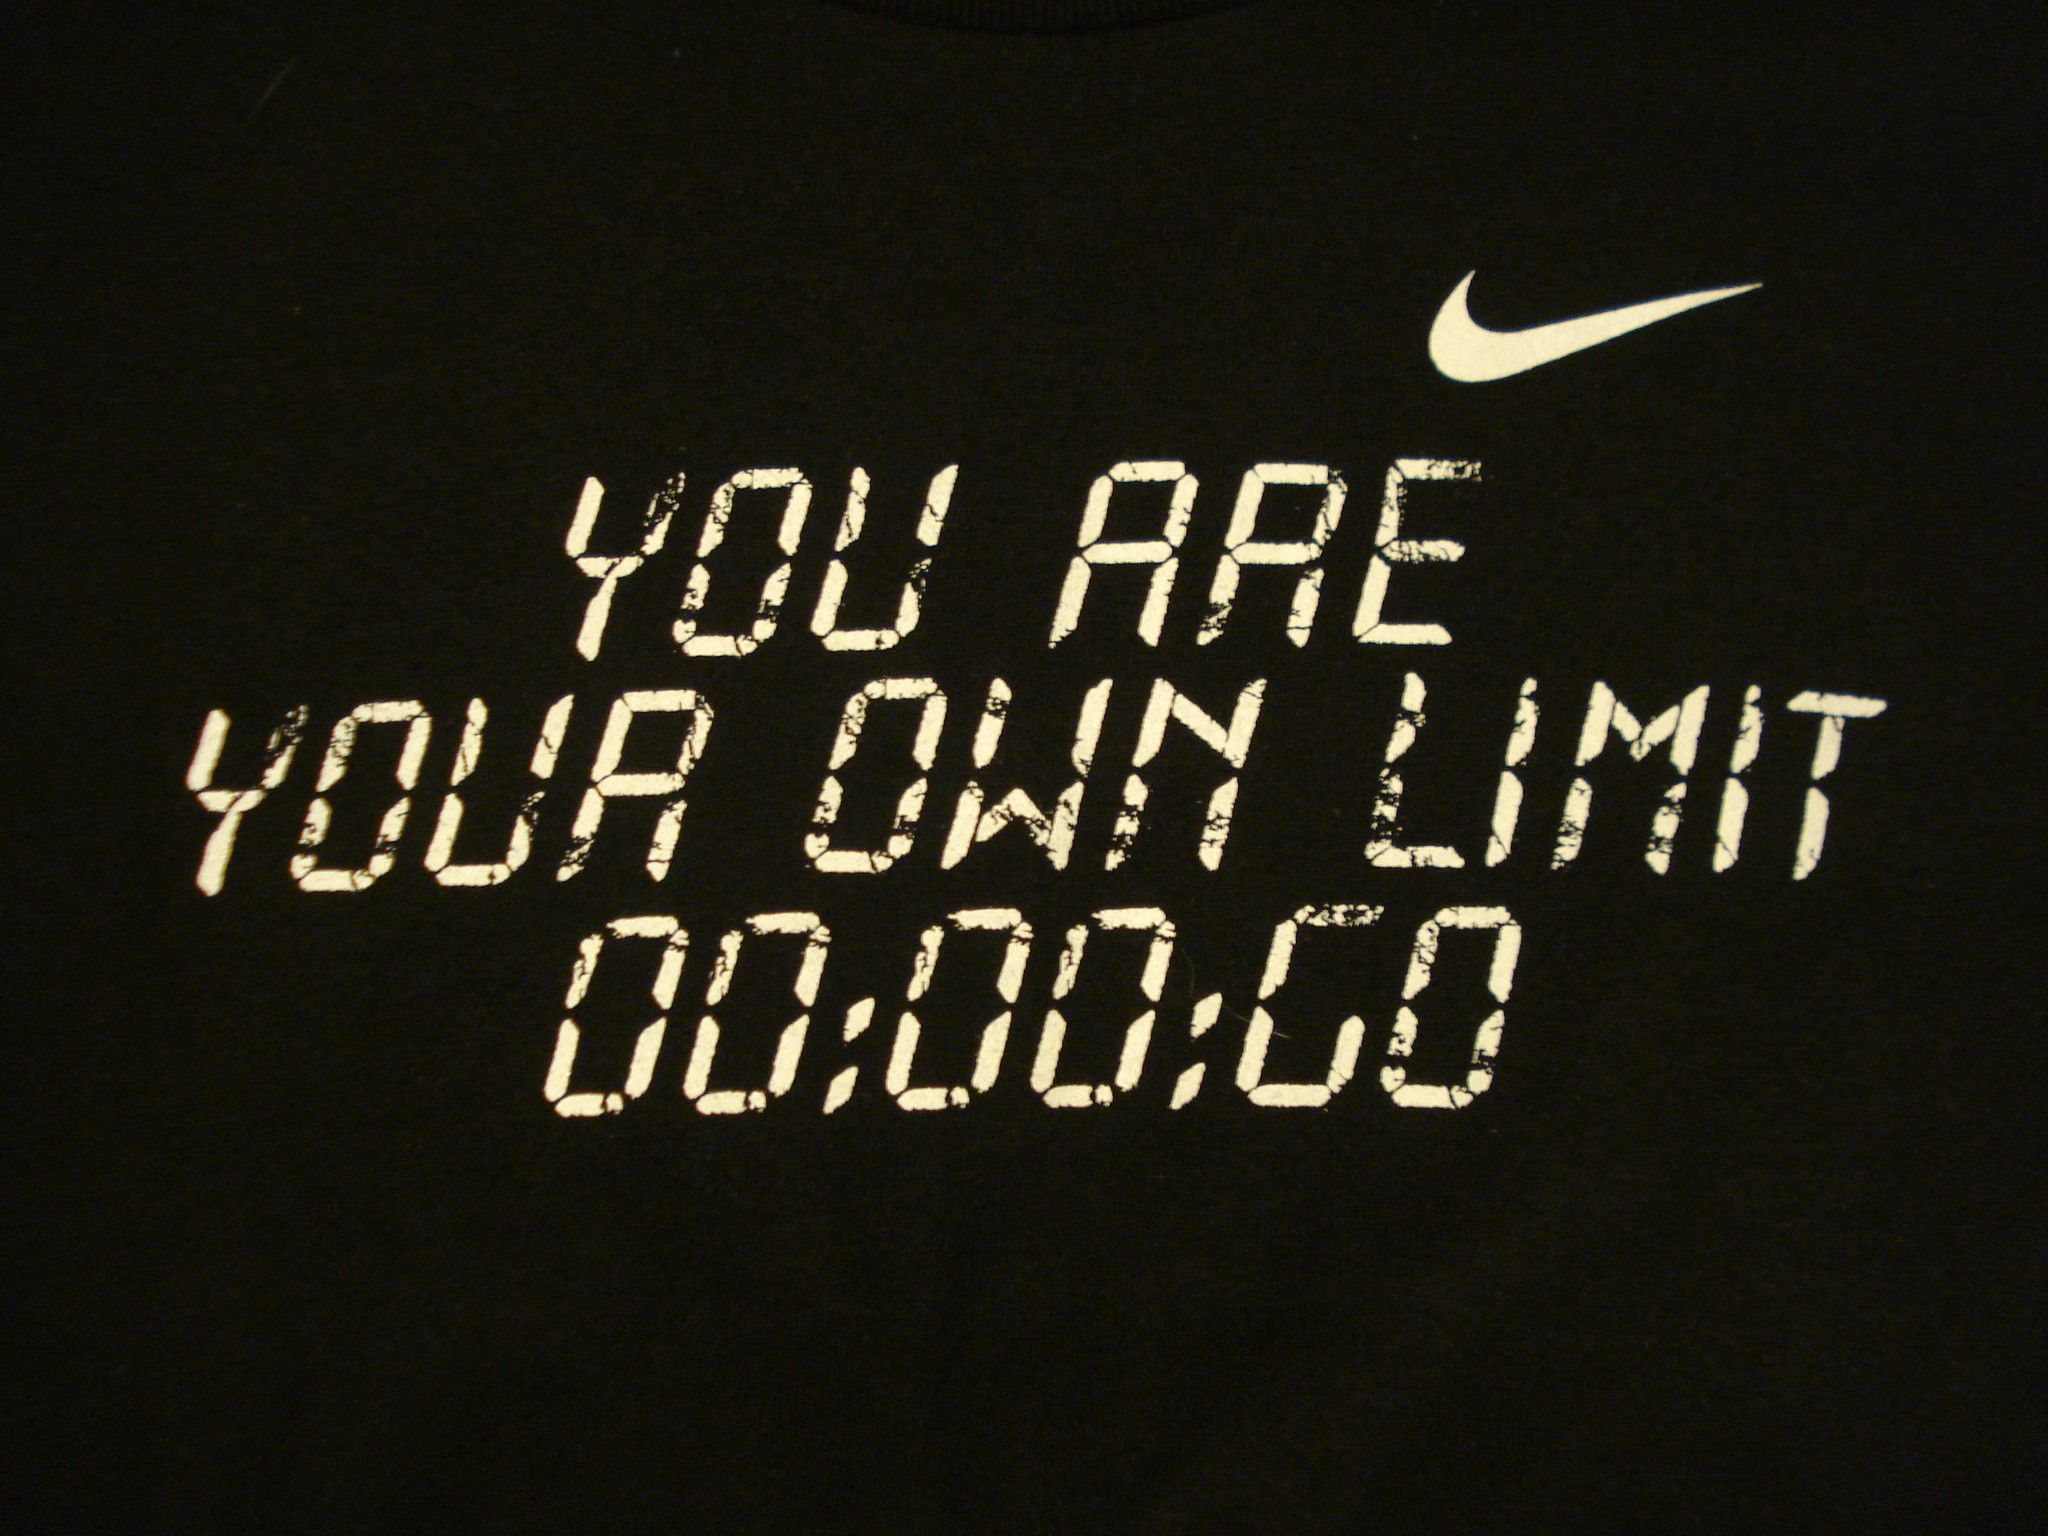 Nike Quotes Wallpaper Hd For Desktop Wallpaper 2048 X 1536 Px 945 23